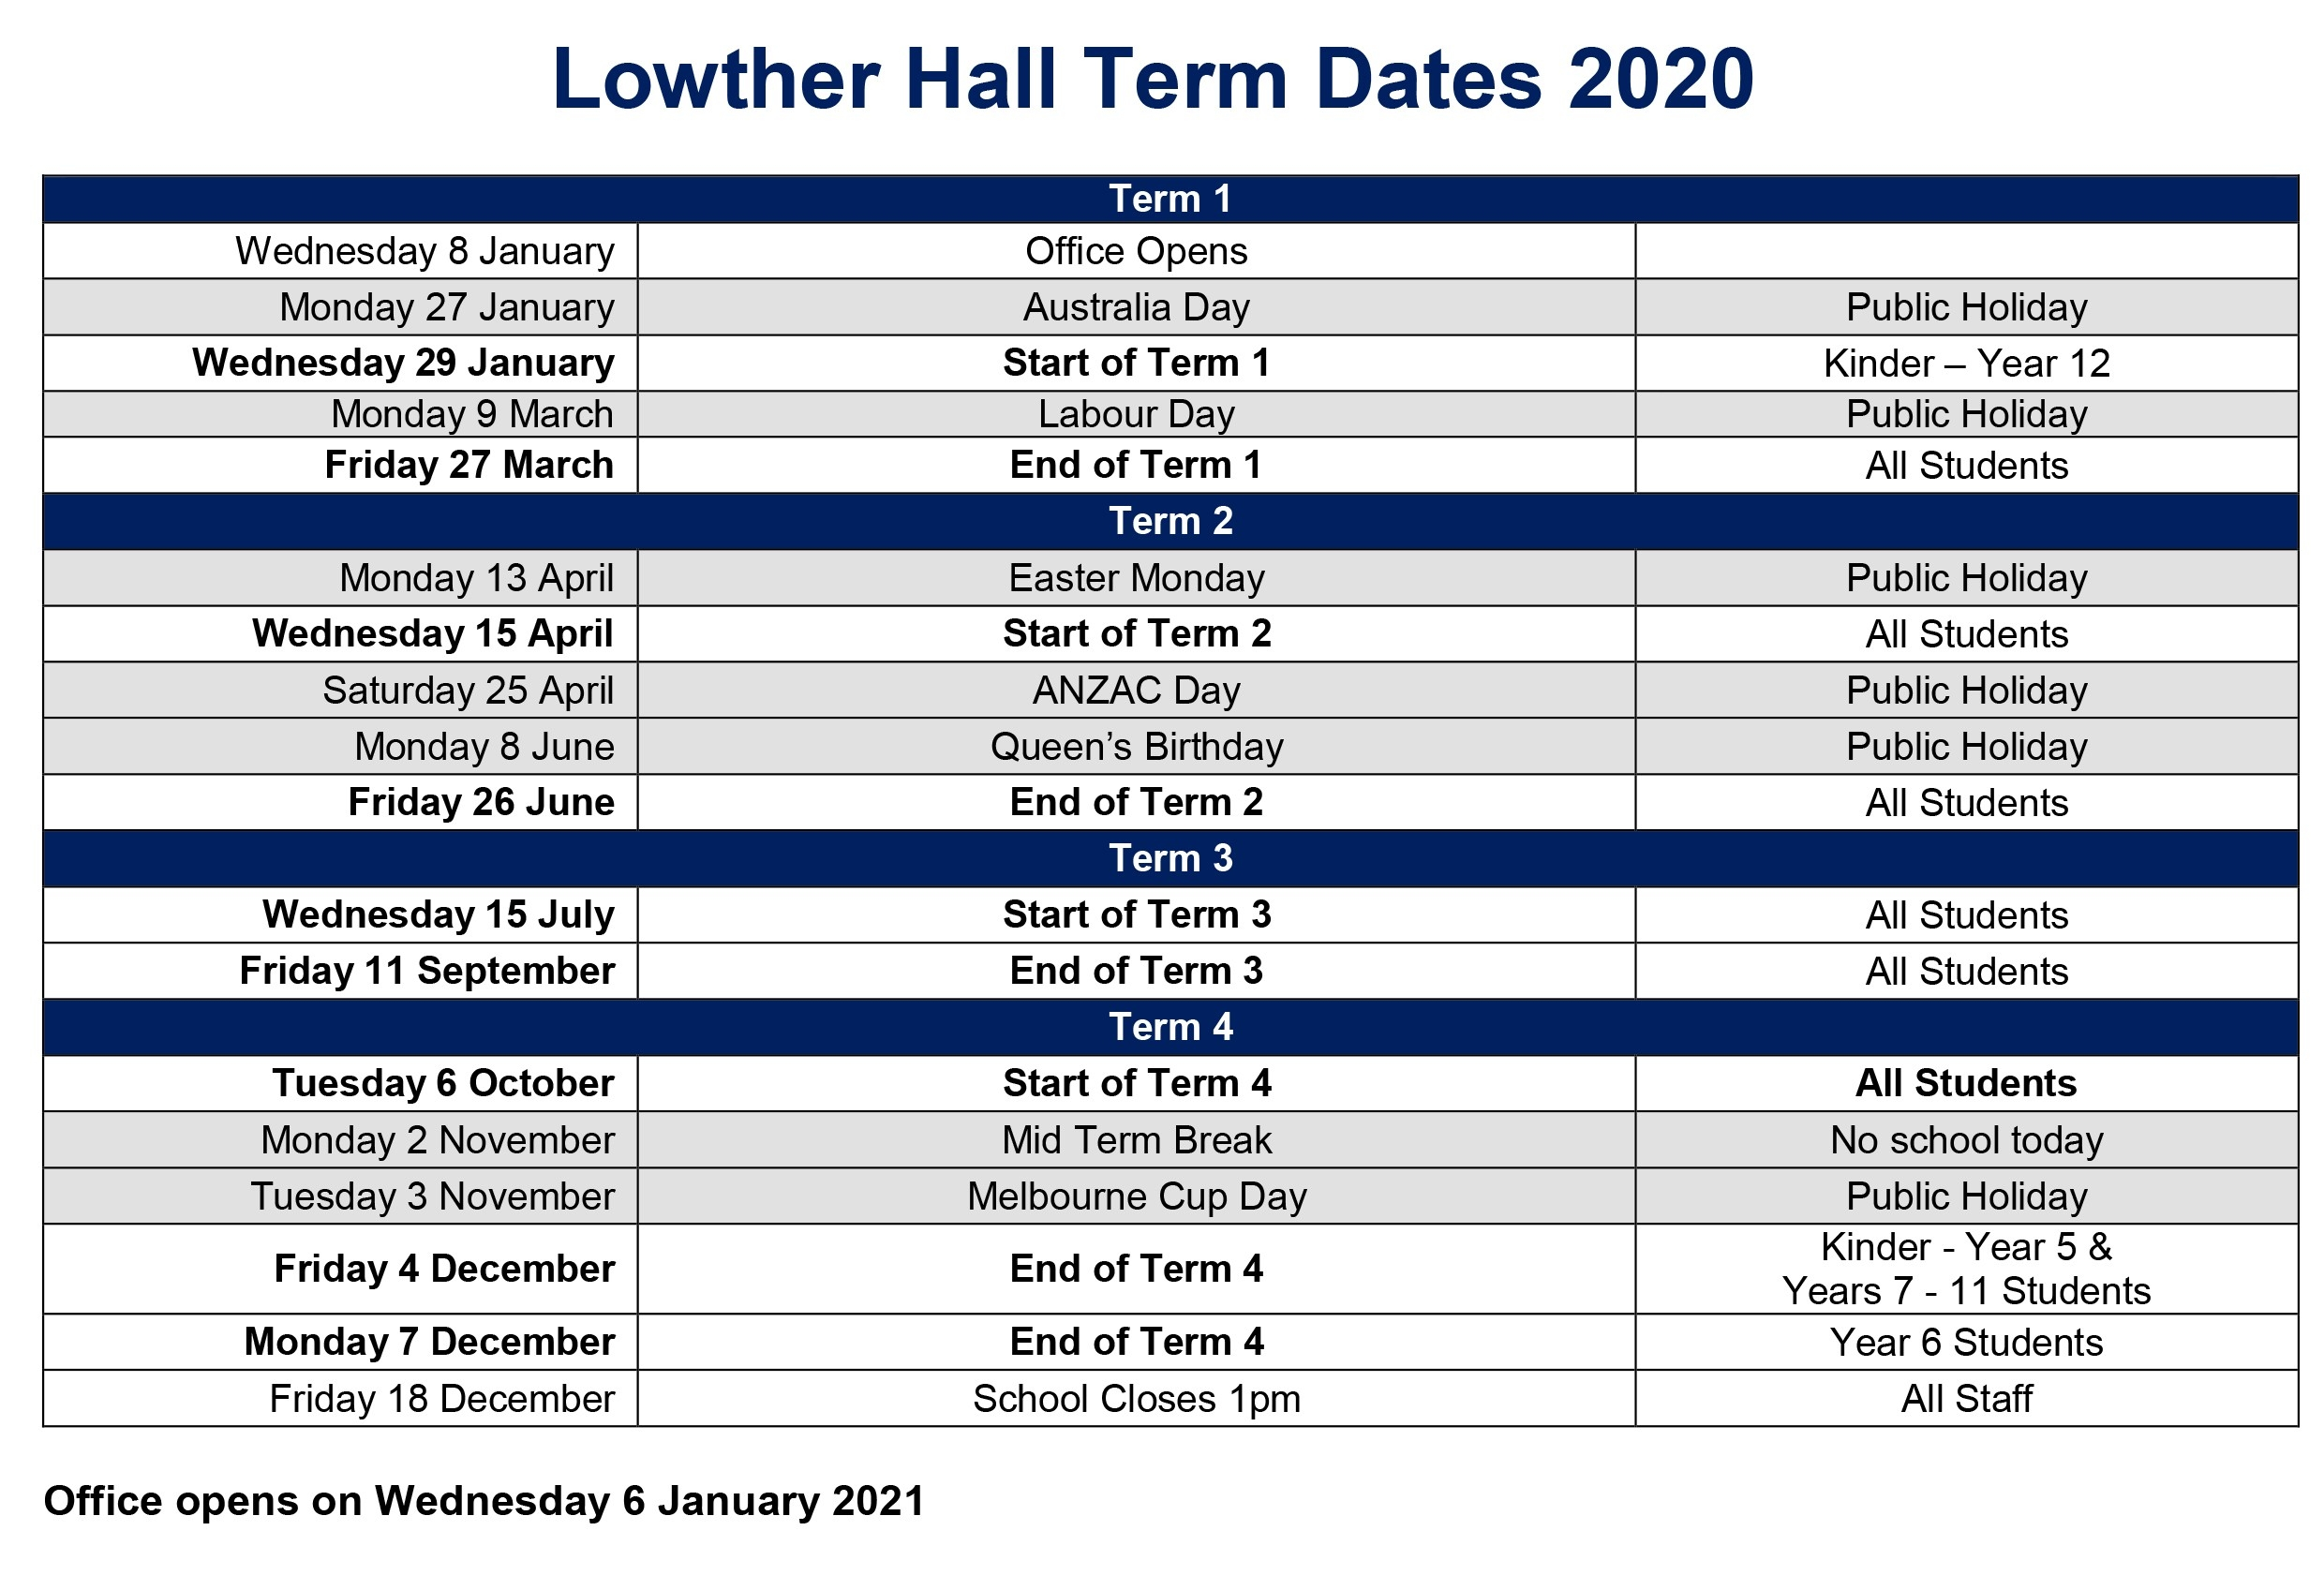 Term Dates - Lowther Hall-Lowther Hall School Holidays